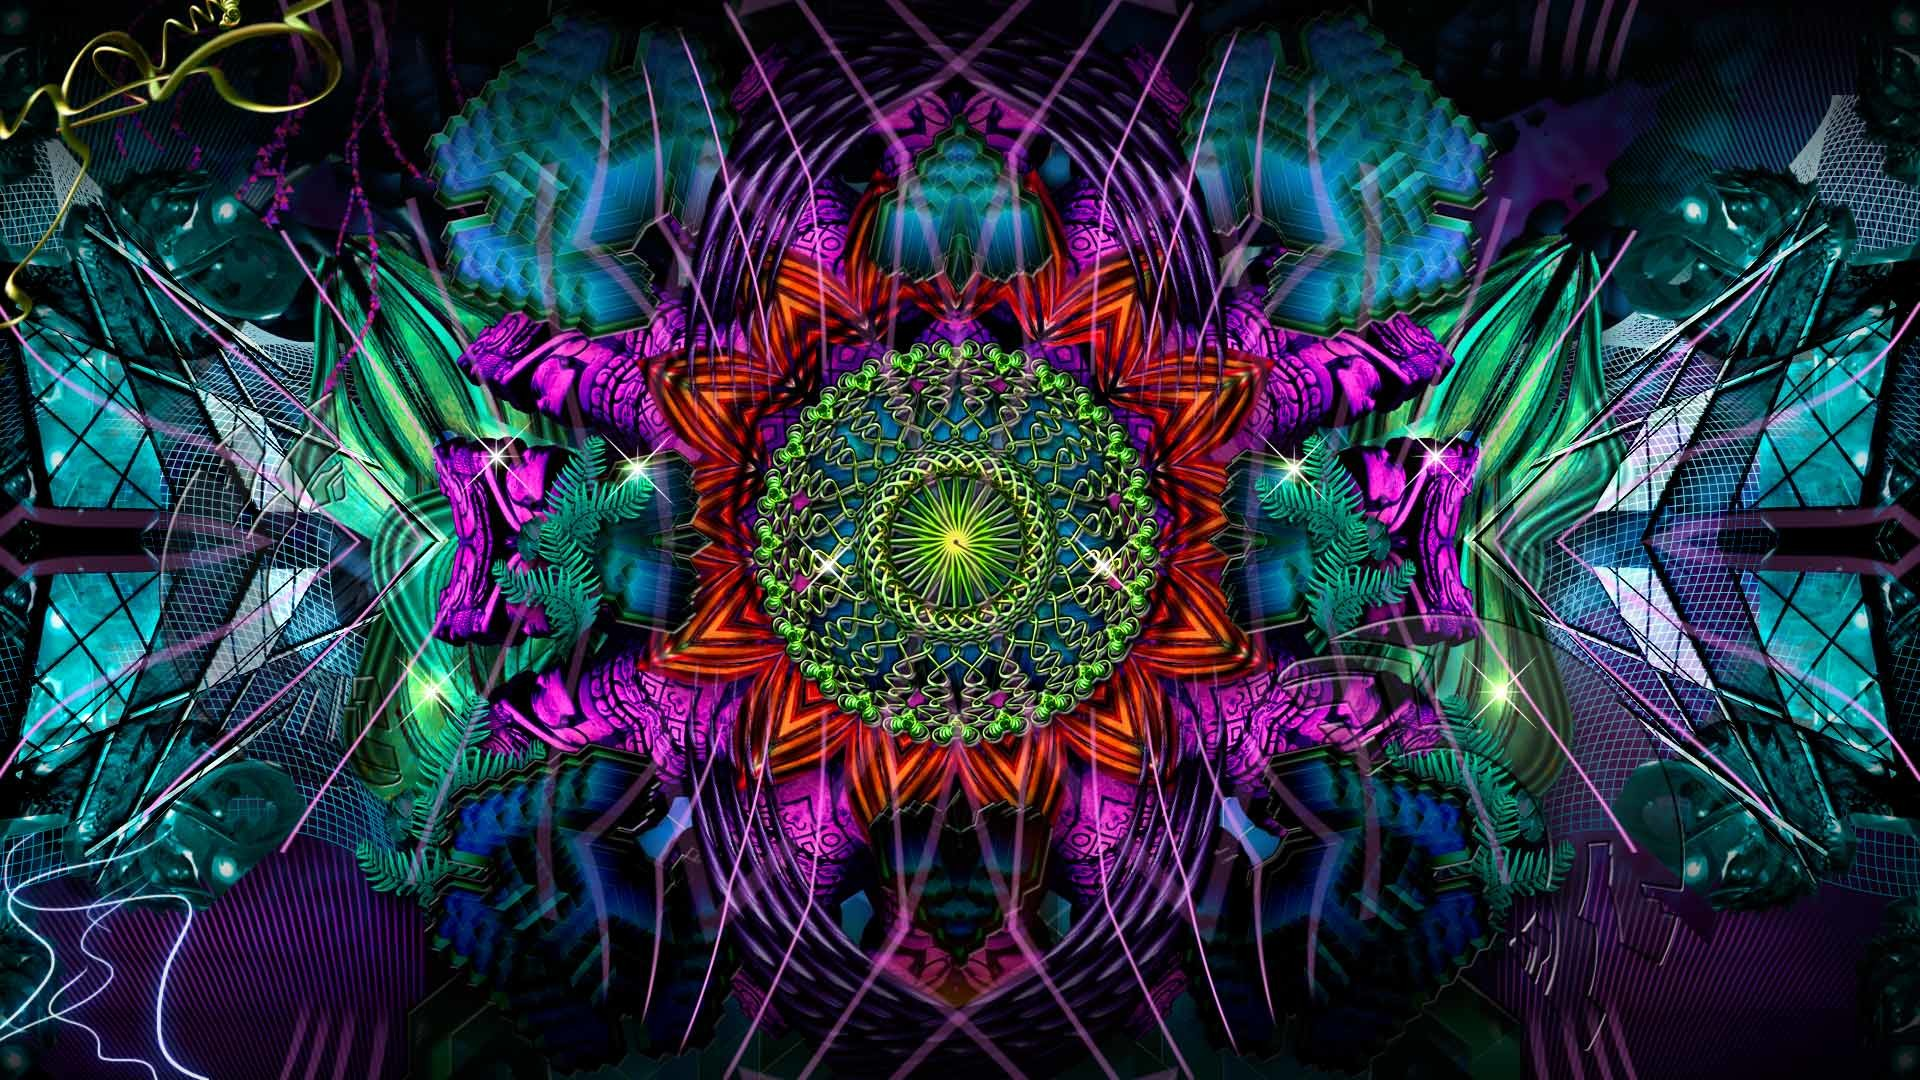 Psytrance wallpaper hd 69 images - Psychedelic wallpaper hd ...